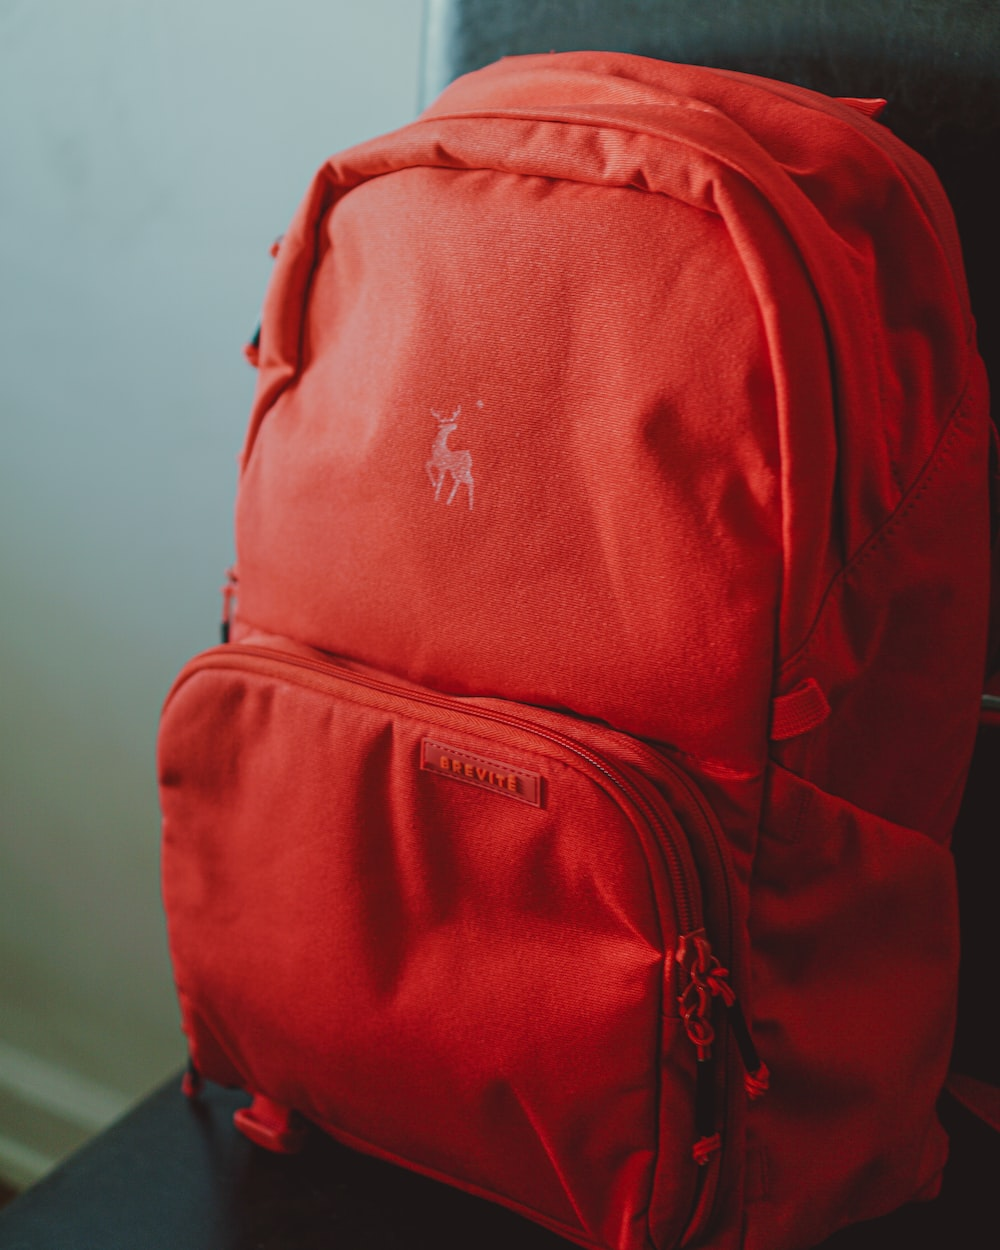 red and black backpack on white table